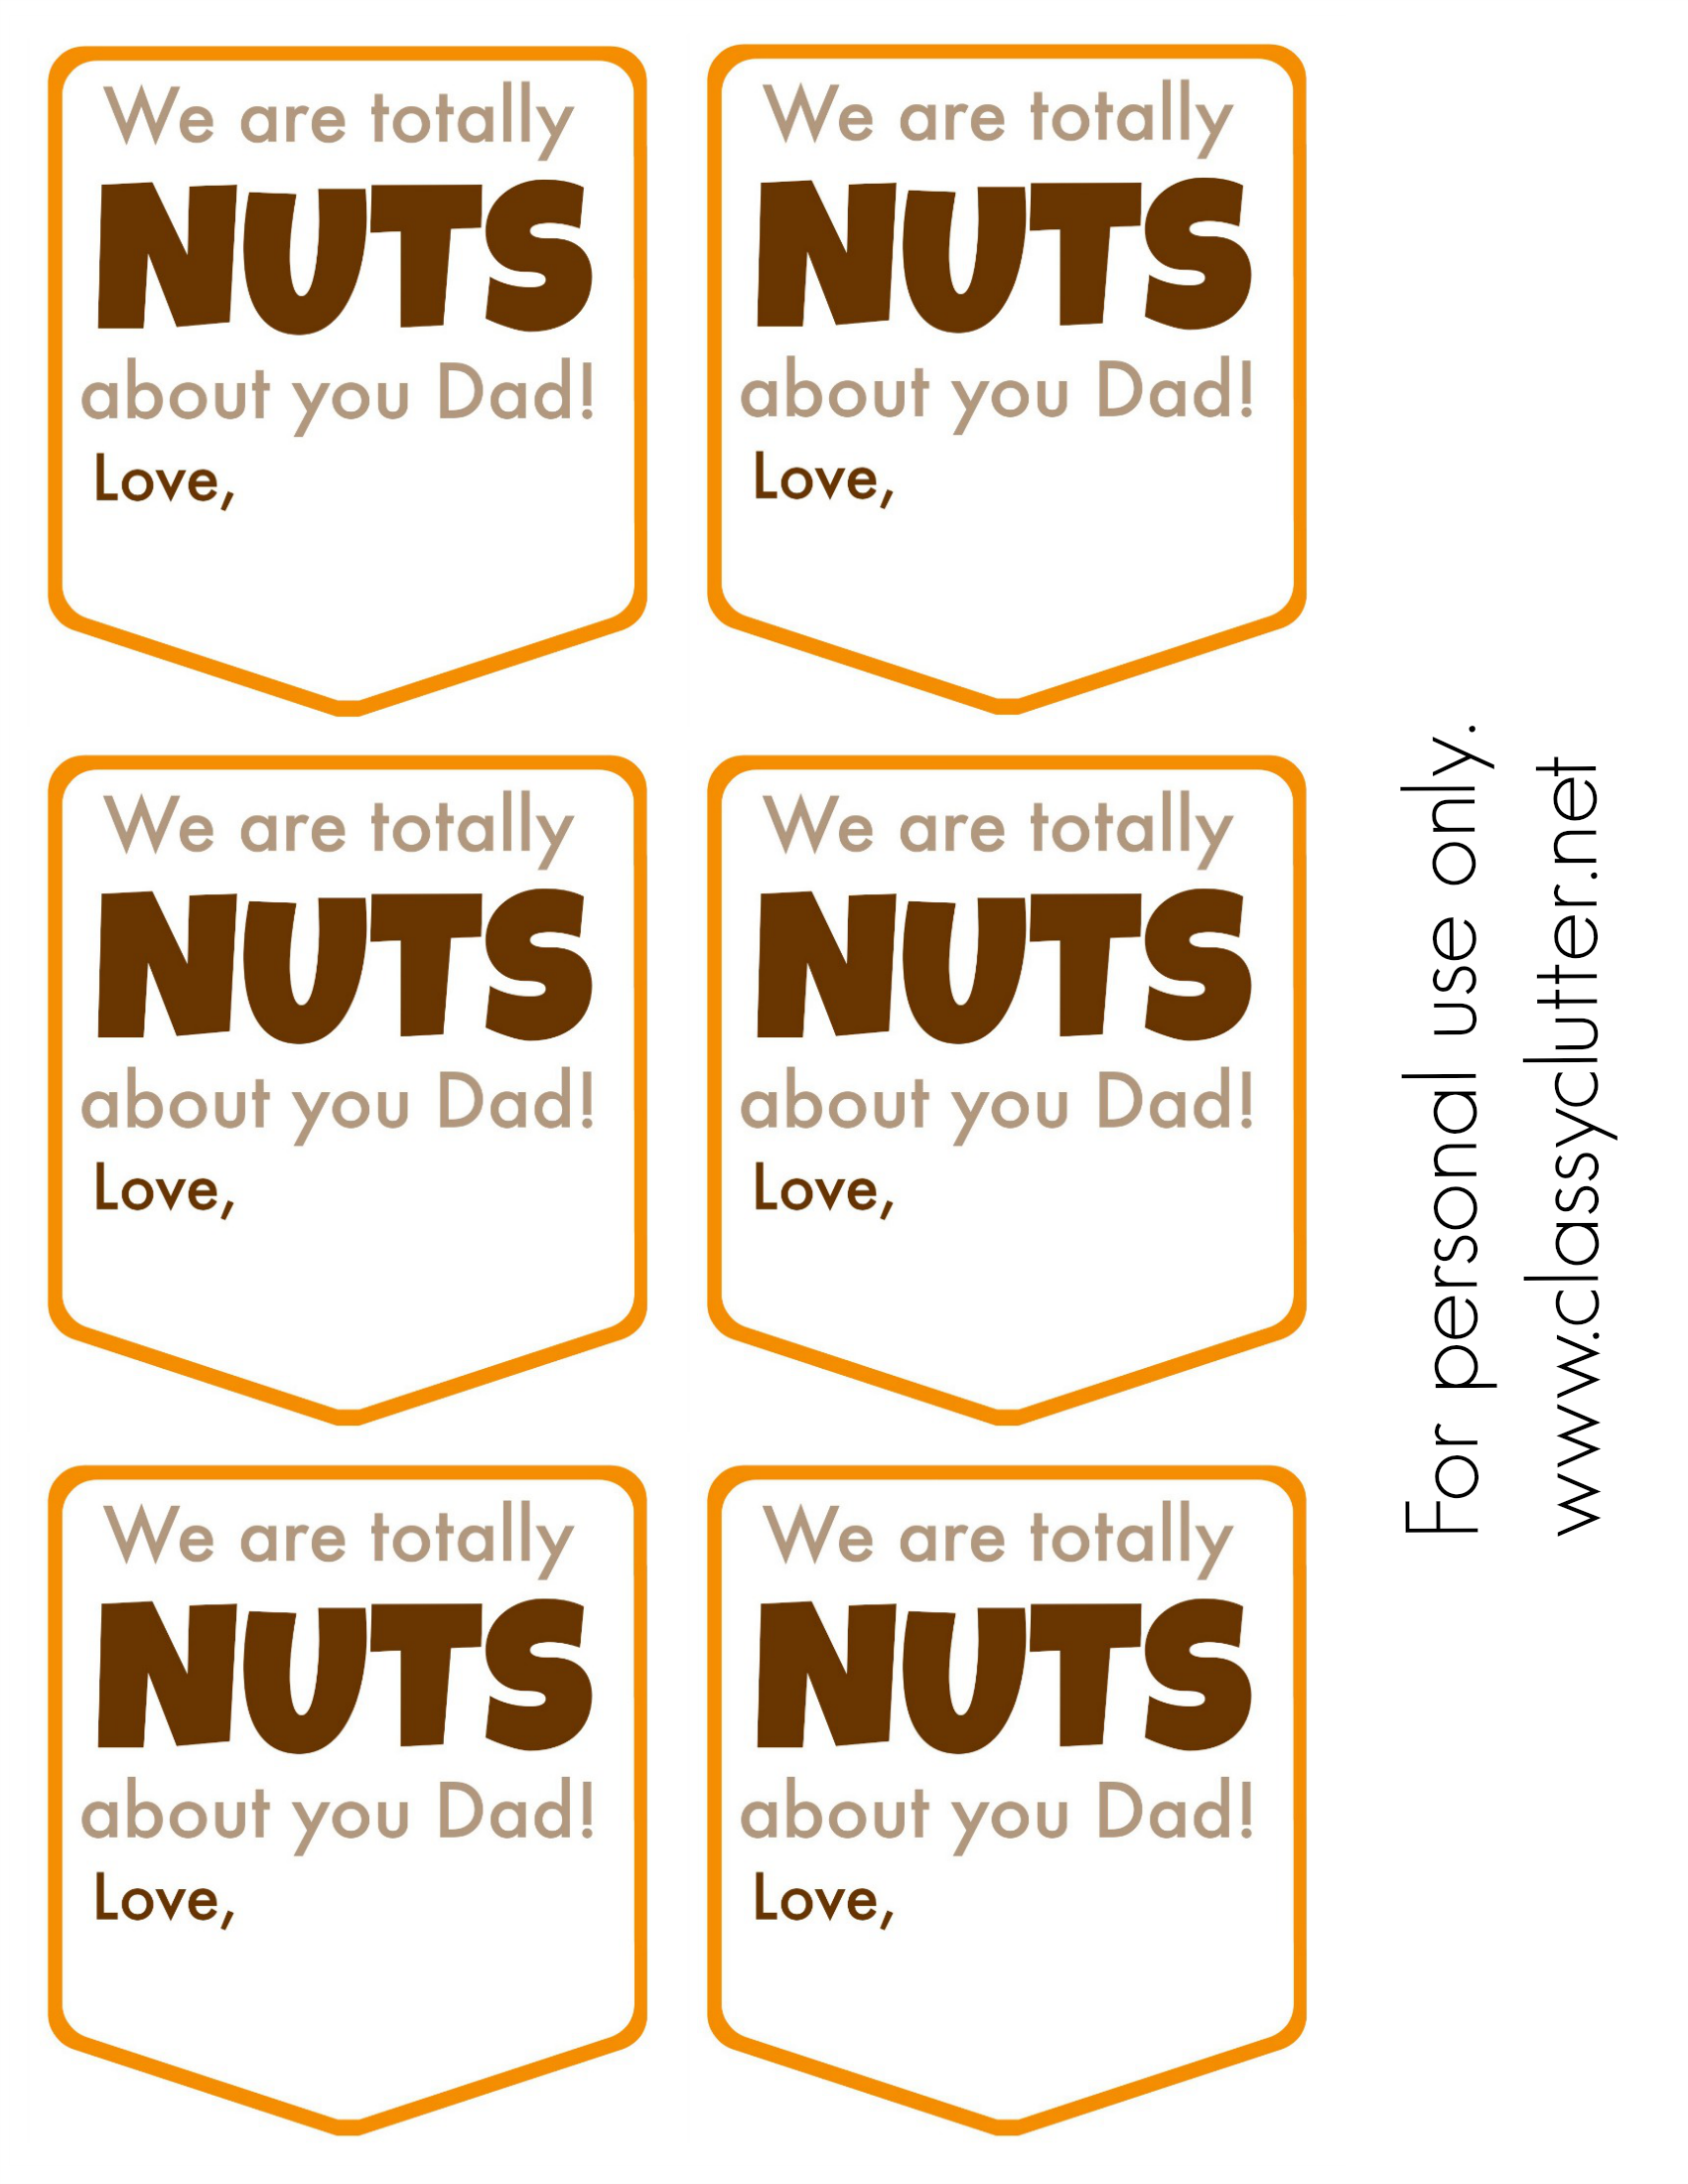 Nuts about you Dad Printable